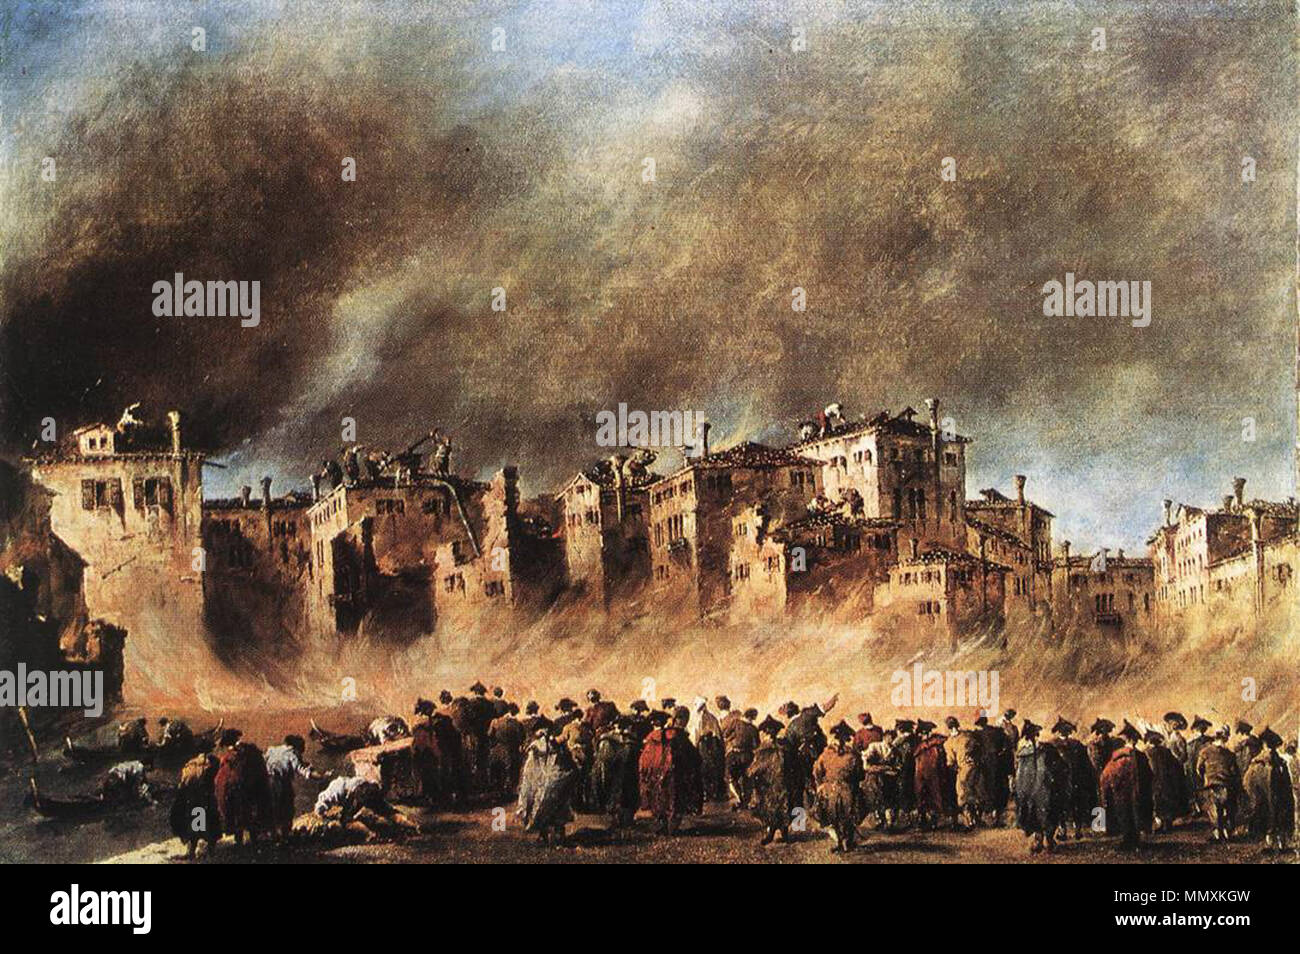 Fire in the Oil Depot at San Marcuola. 1789. Francesco Guardi - Fire in the Oil Depot at San Marcuola - WGA10884 Stock Photo